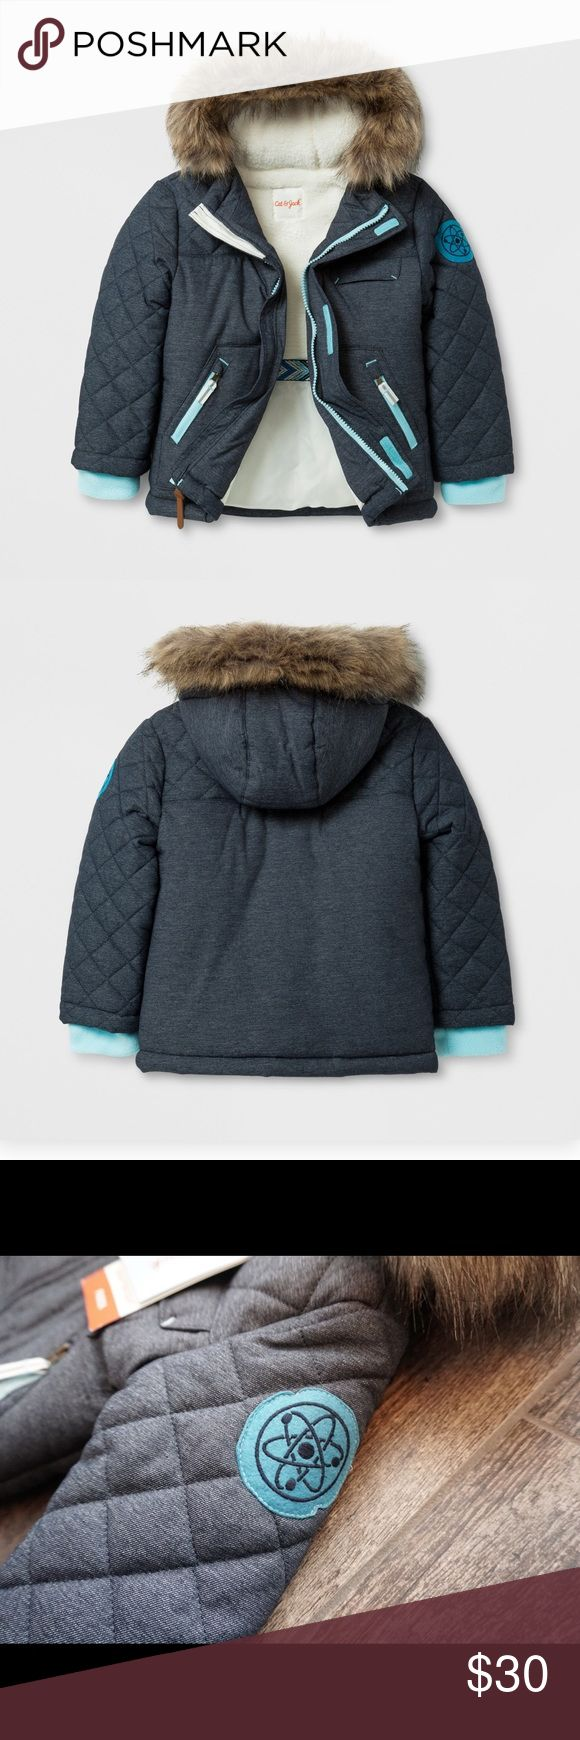 🆕LISTING Cat & Jack Heavyweight Parka Parka with Sherpa lining to keep your little one warm. Water resistant.. This navy hooded jacket features removable faux fur around the hood. It is attached by buttons. Front zippered pockets. Front full length zipper with velcro fasteners. Machine washable. 12 months. Bundle and save! Jackets & Coats Puffers